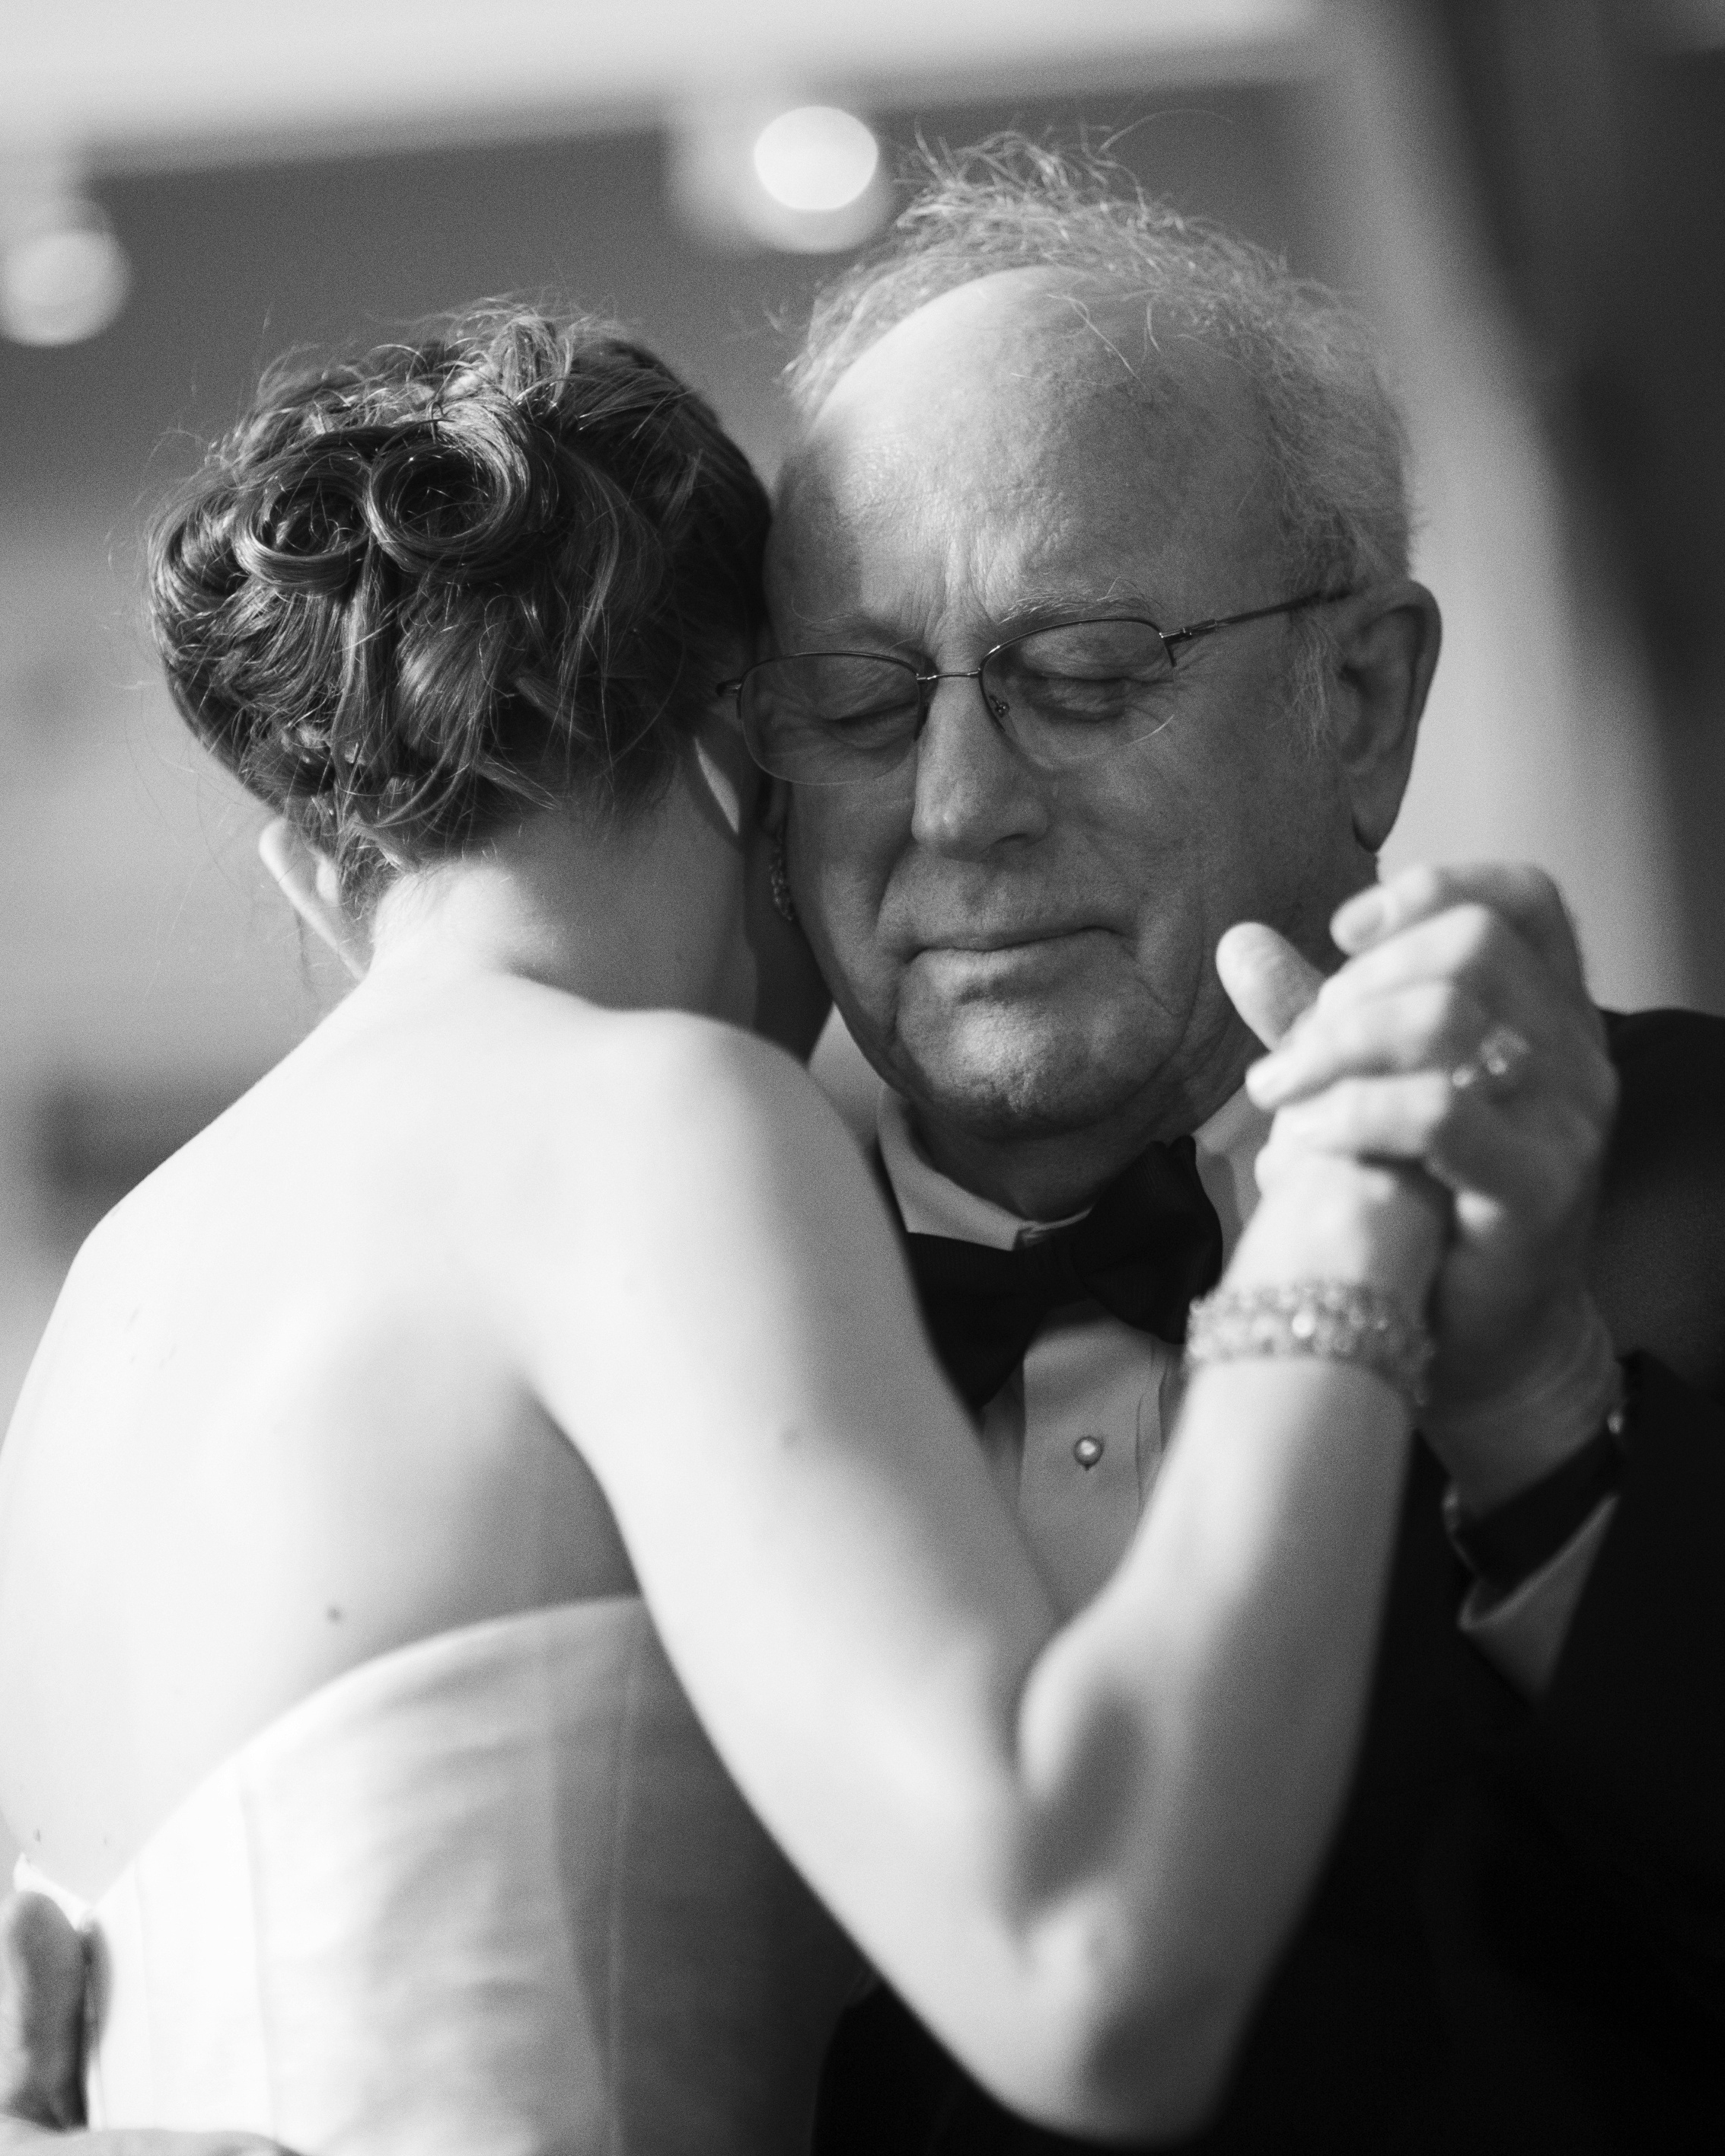 Dancing with Dad